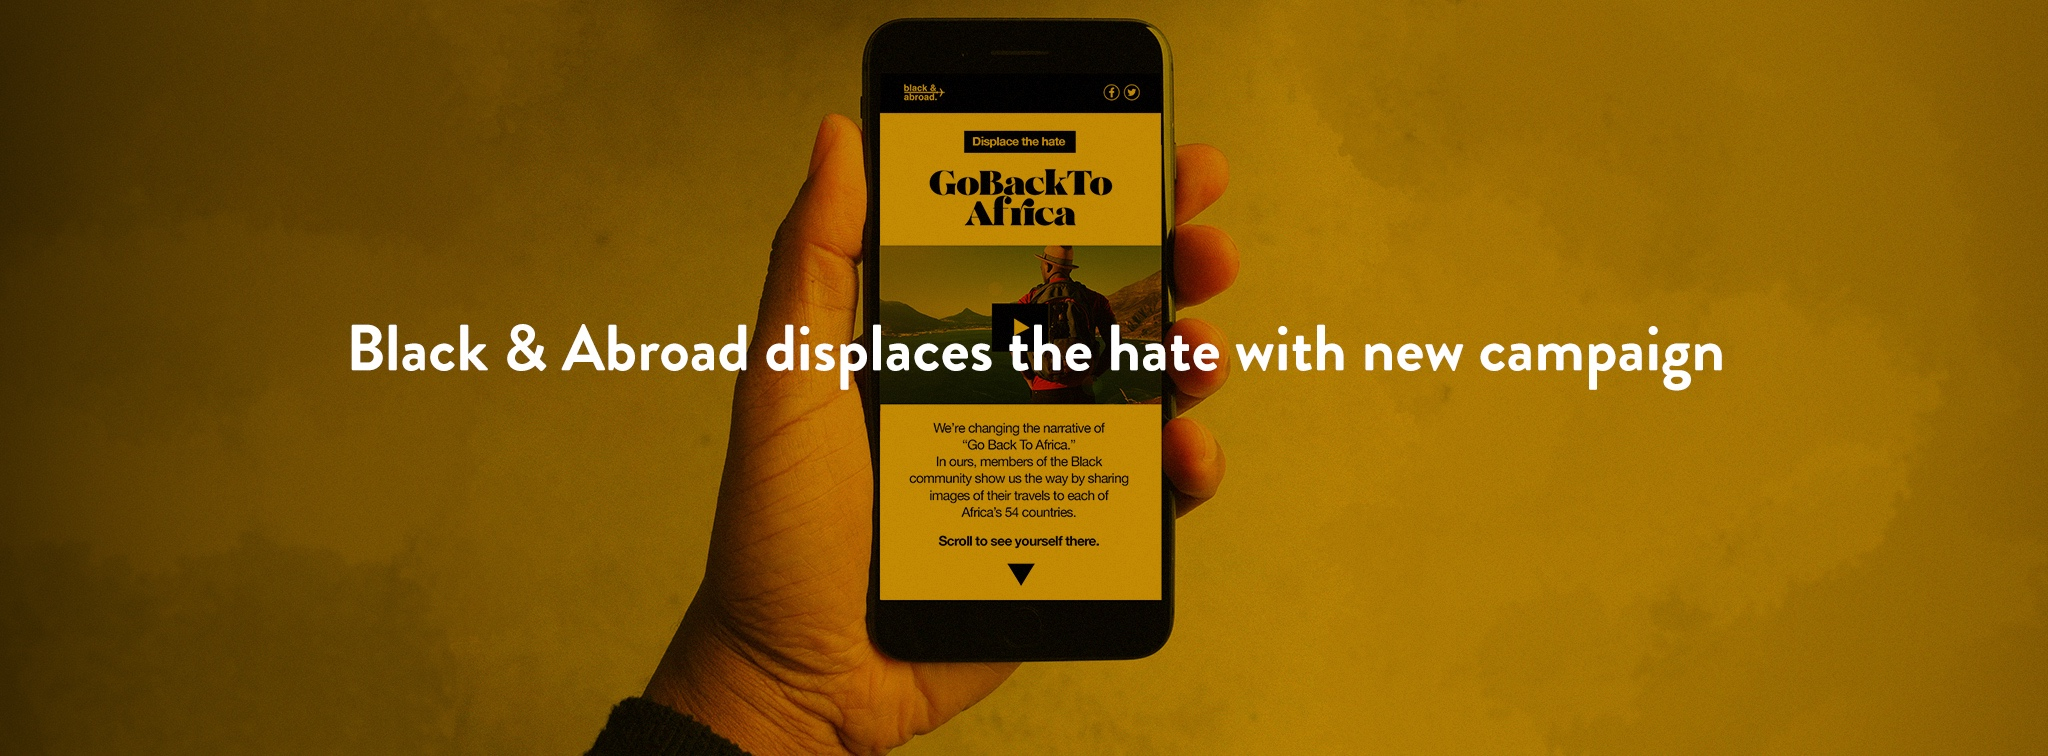 Black & Abroad displaces the hate with new campaign